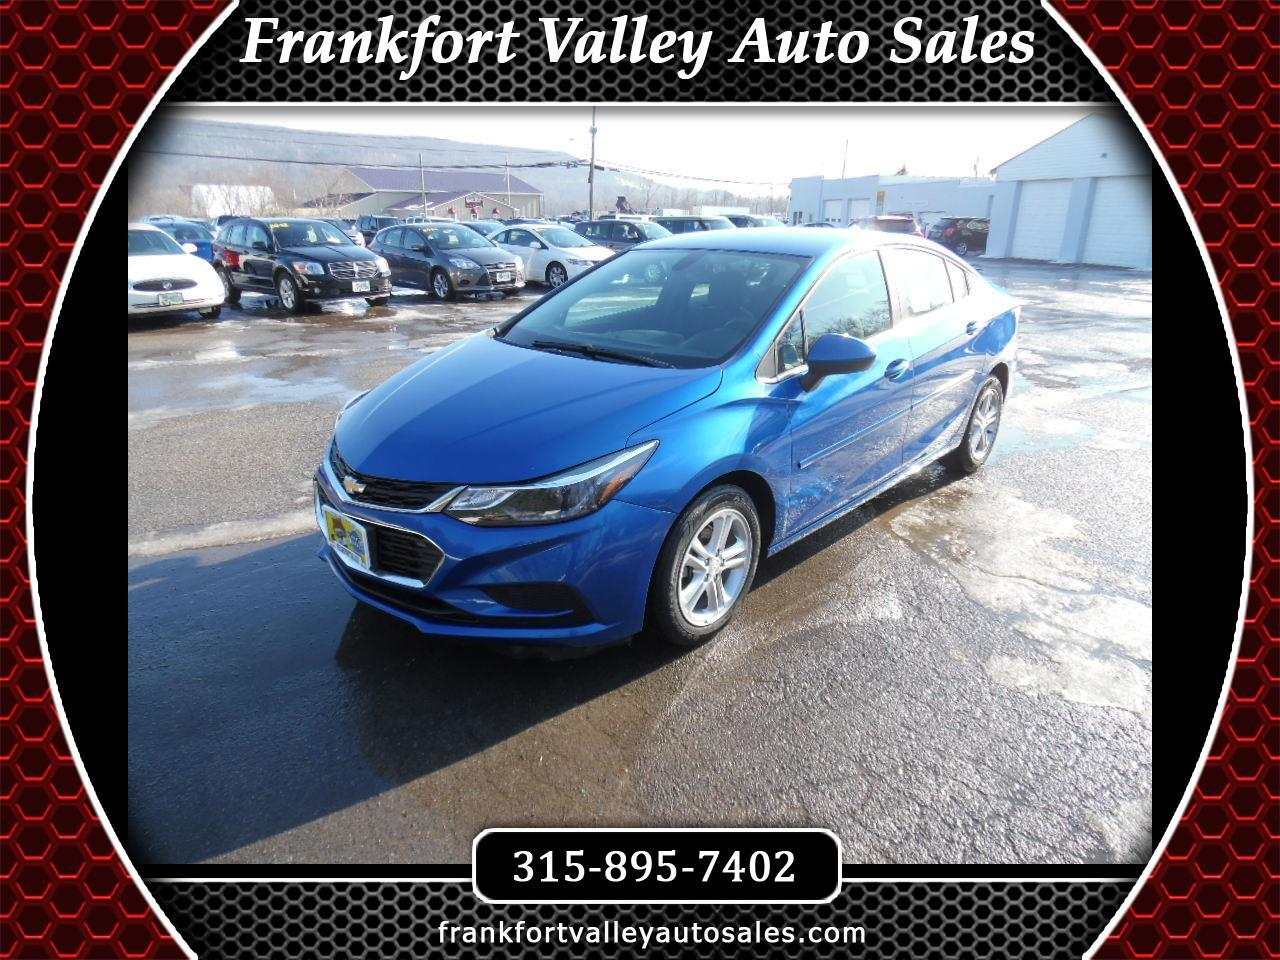 2017 Chevrolet Cruze 4dr Sdn 1.4L LT w/1SD